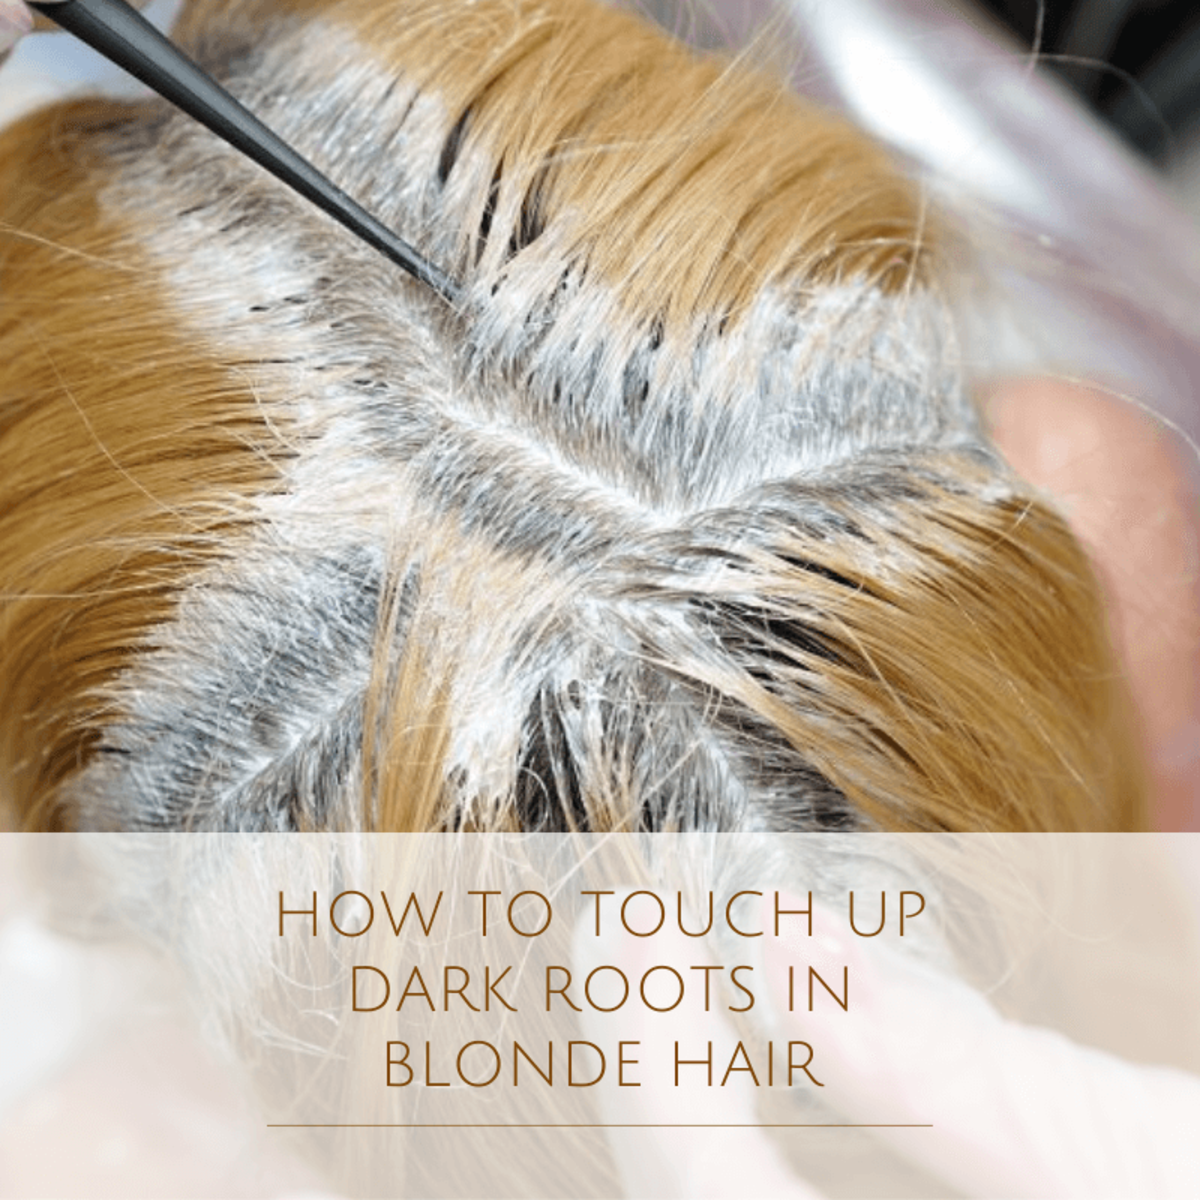 How to Touch-Up Dark Roots in Blonde Hair